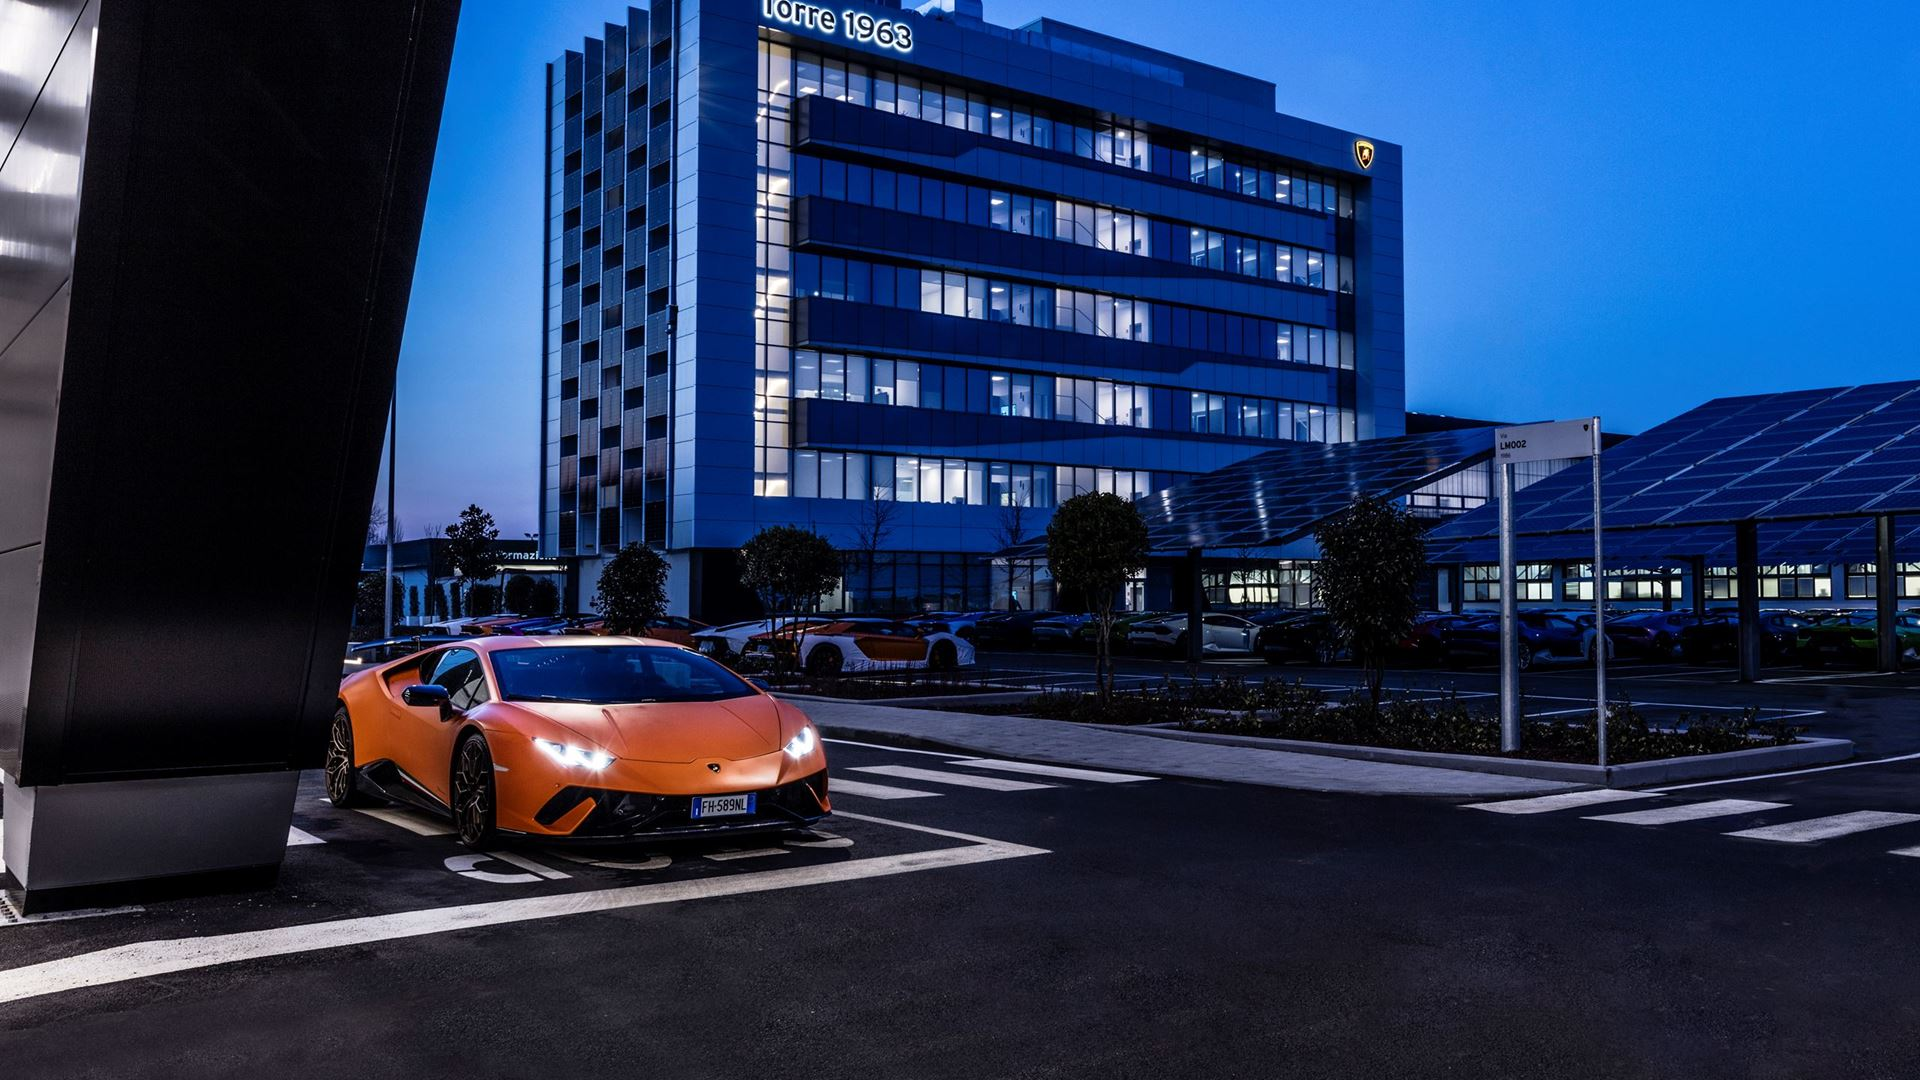 Earth Day: Lamborghini receives the Green Star 2021 award and renews its commitment to environmental sustainability by participating in #Project1Hour - Image 5